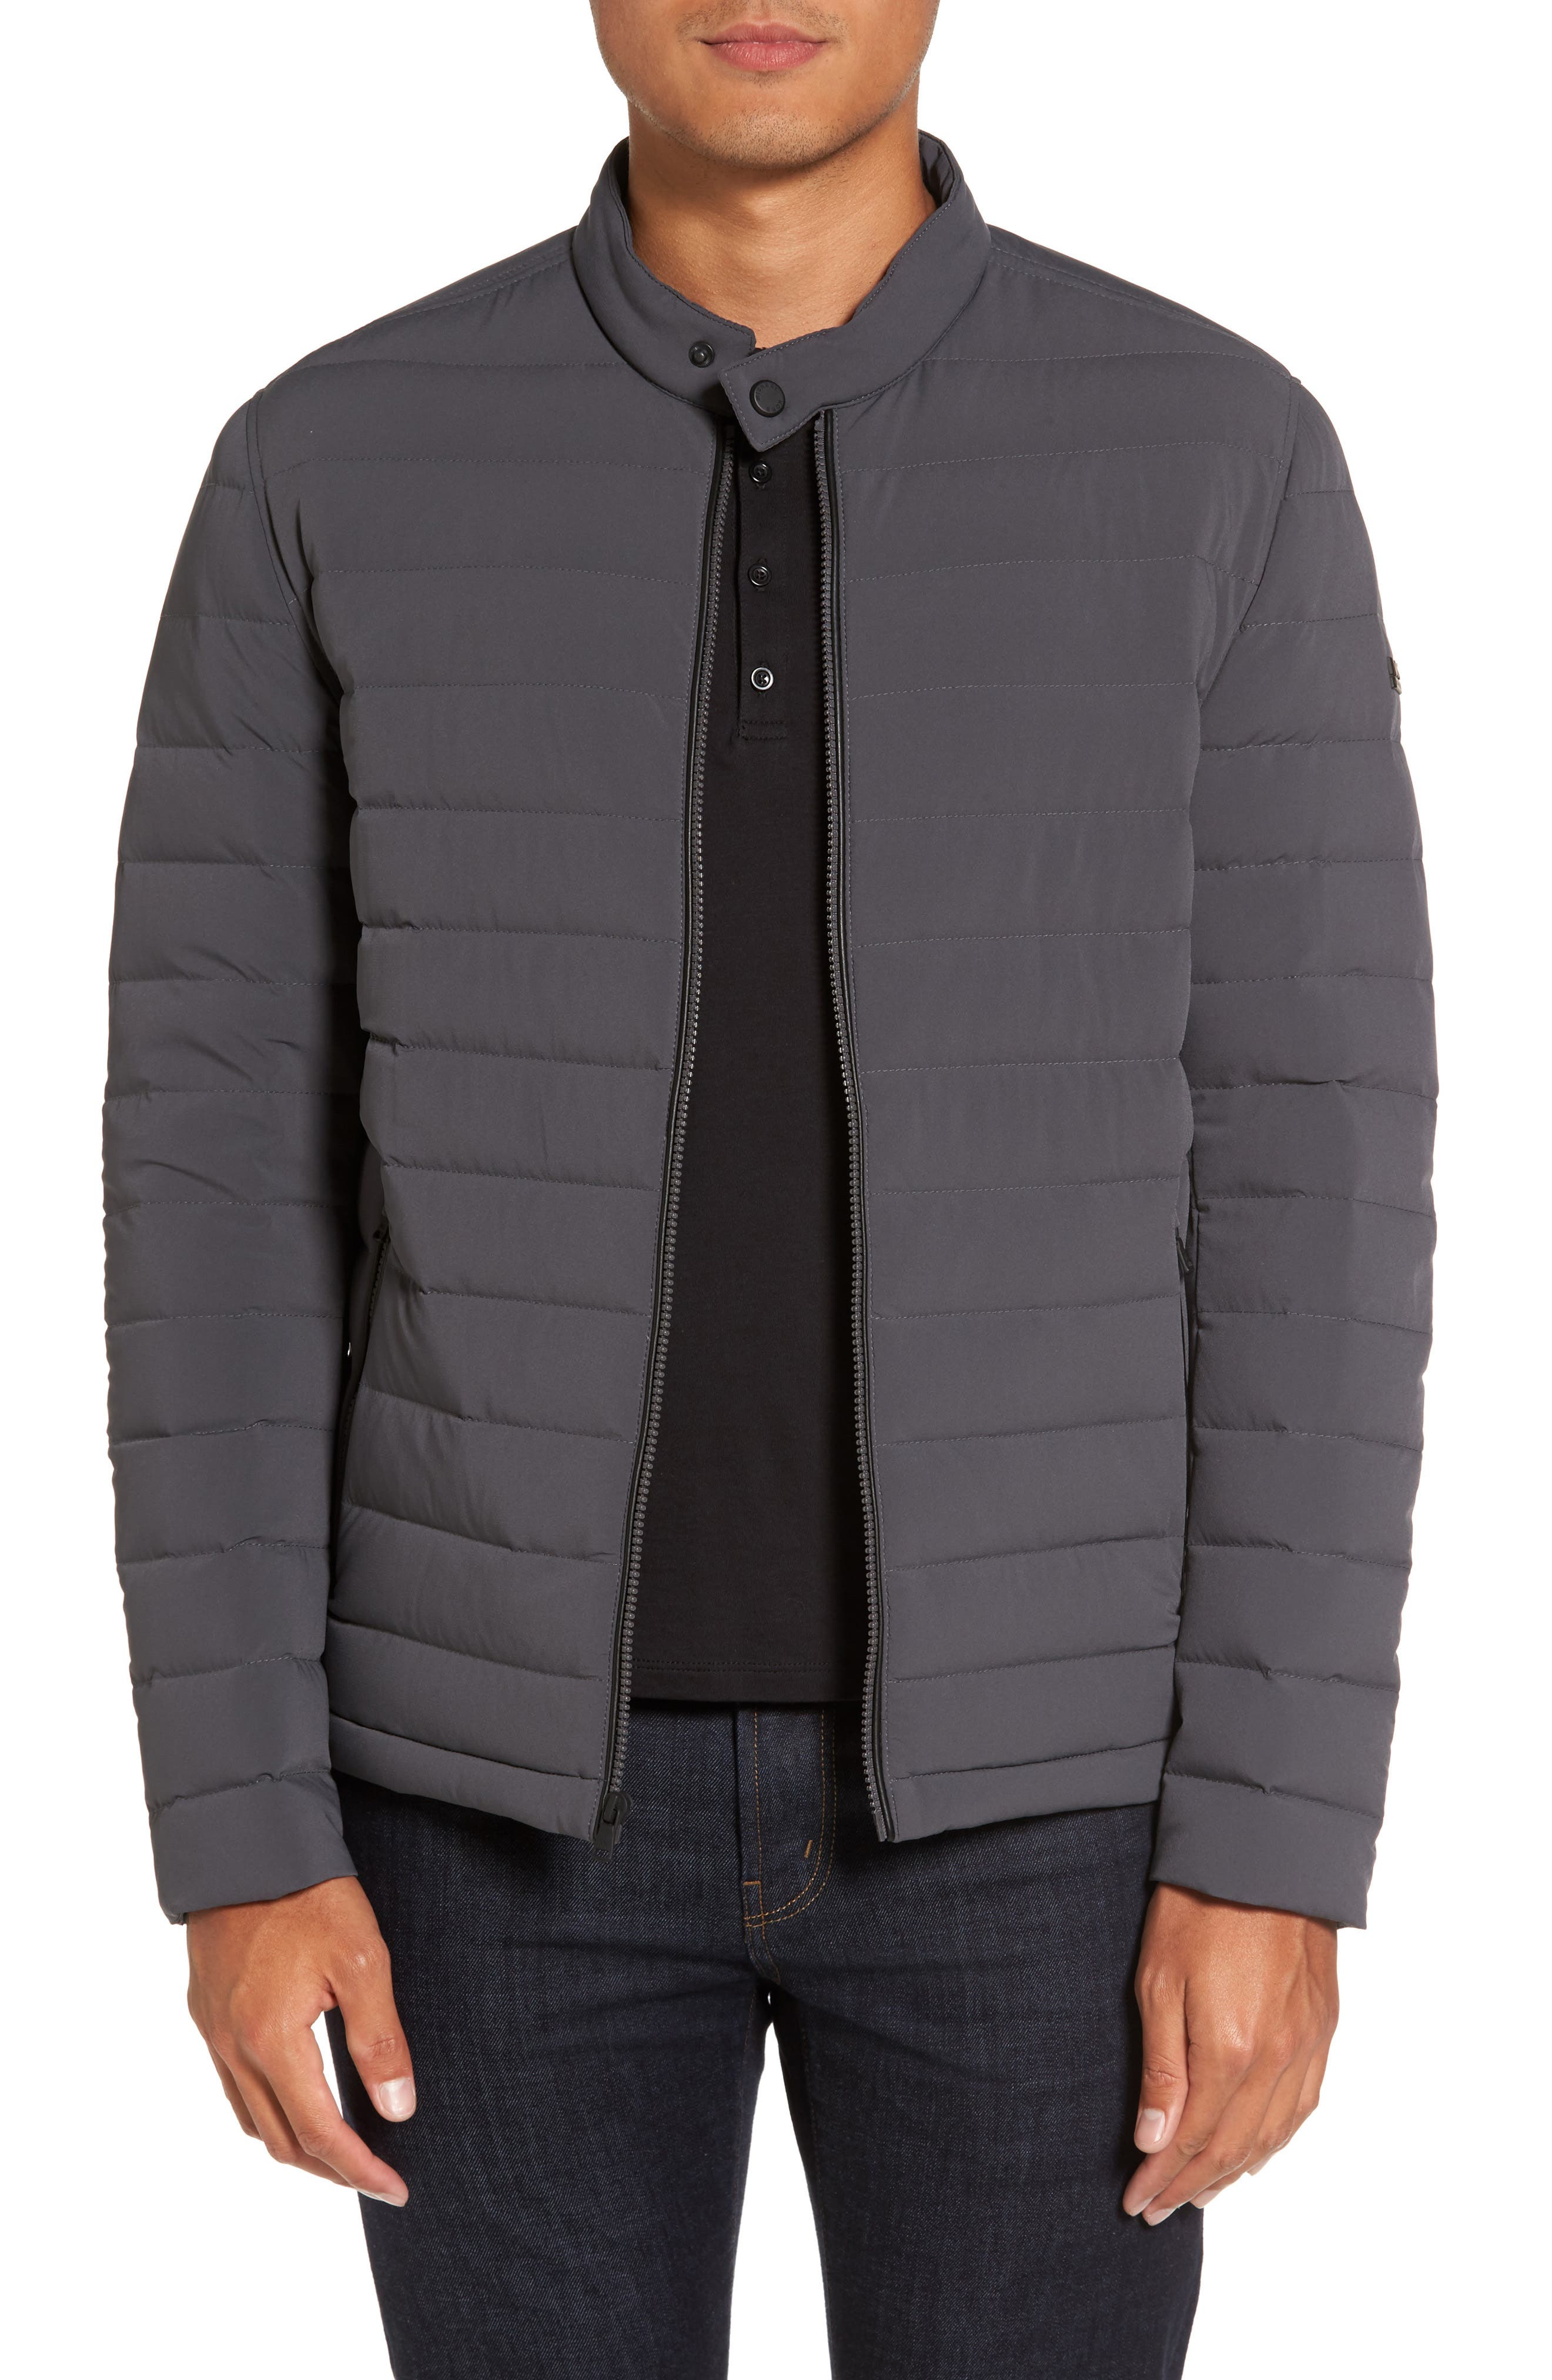 Alternate Image 1 Selected - Michael Kors Packable Stretch Down Jacket